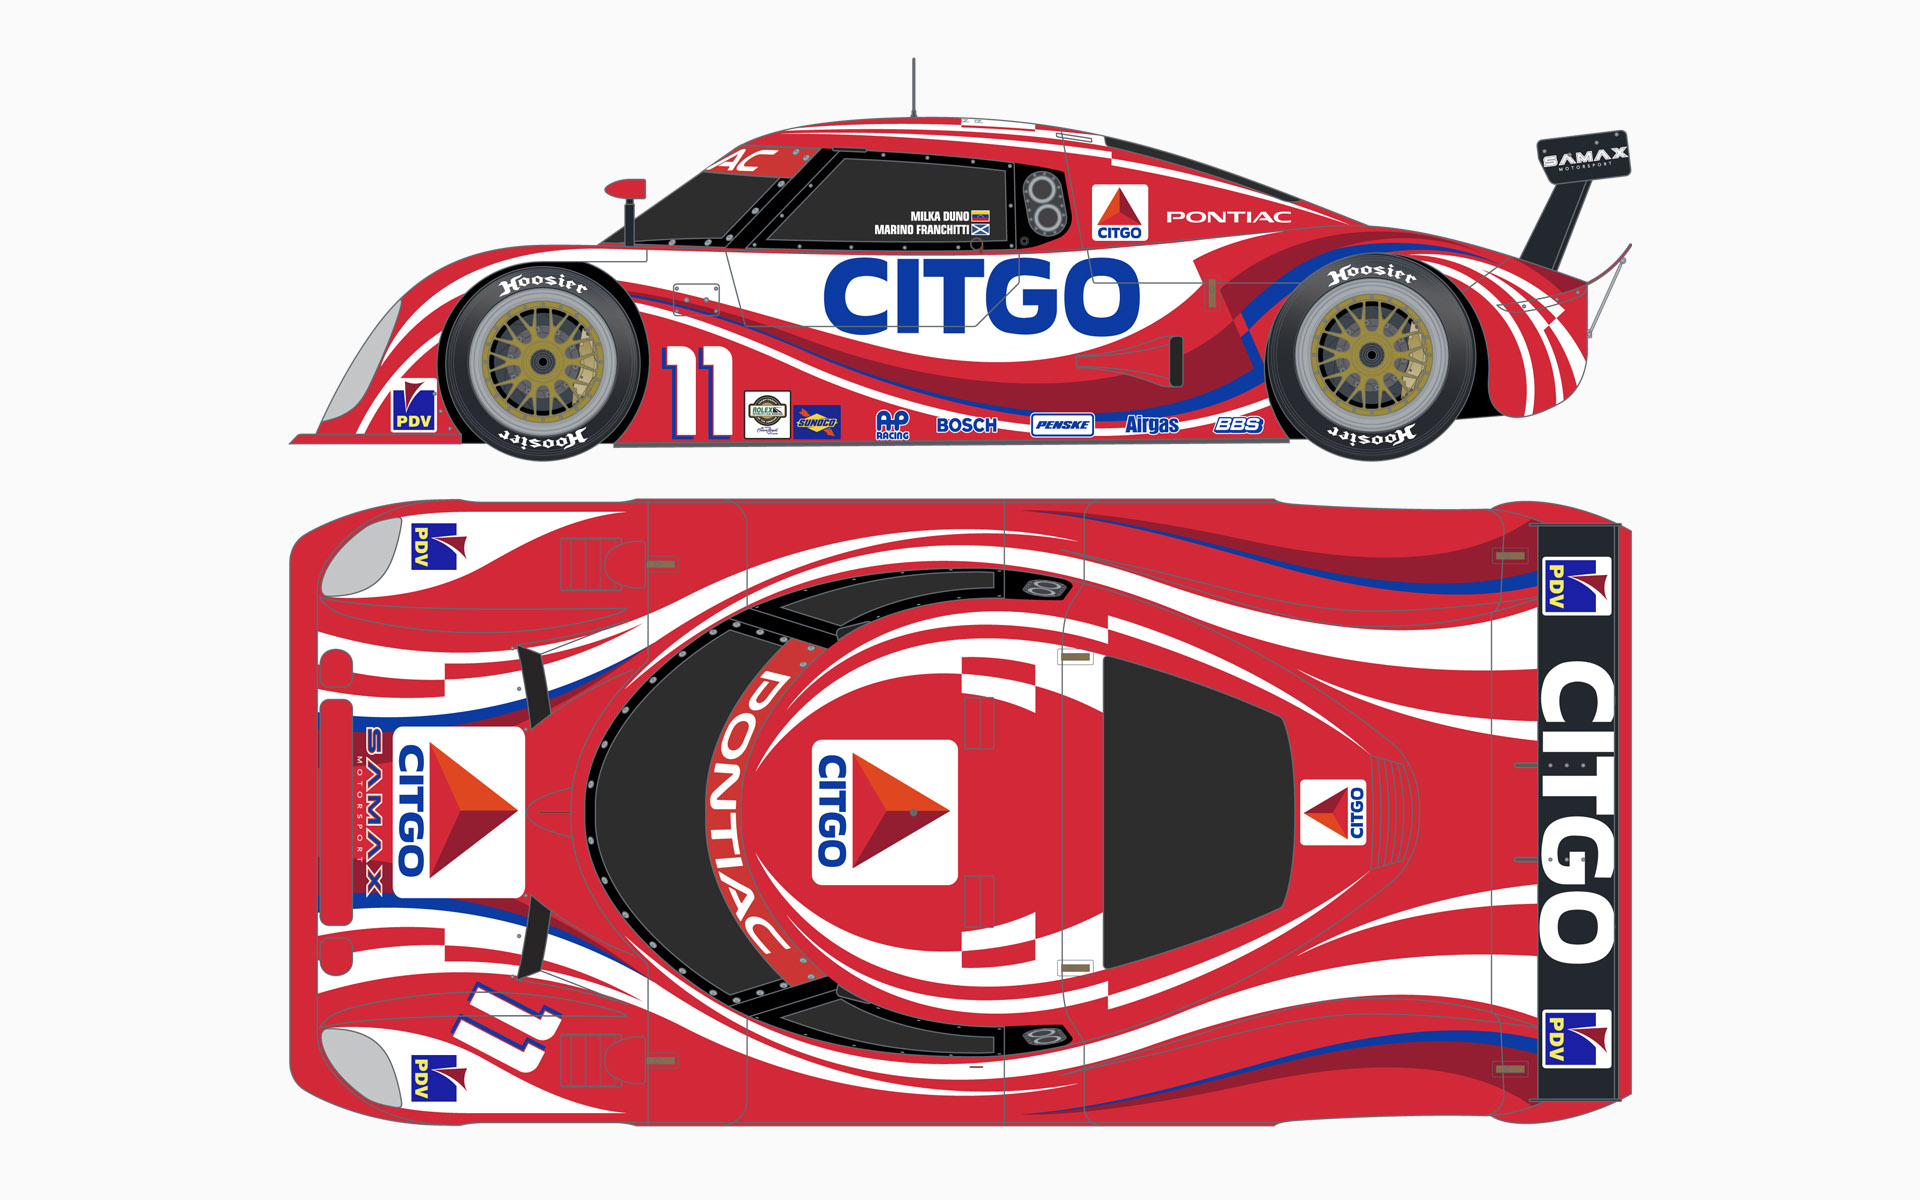 2006 Citgo Racing Pontiac Riley MKXI Daytona Prototype Livery Elevations